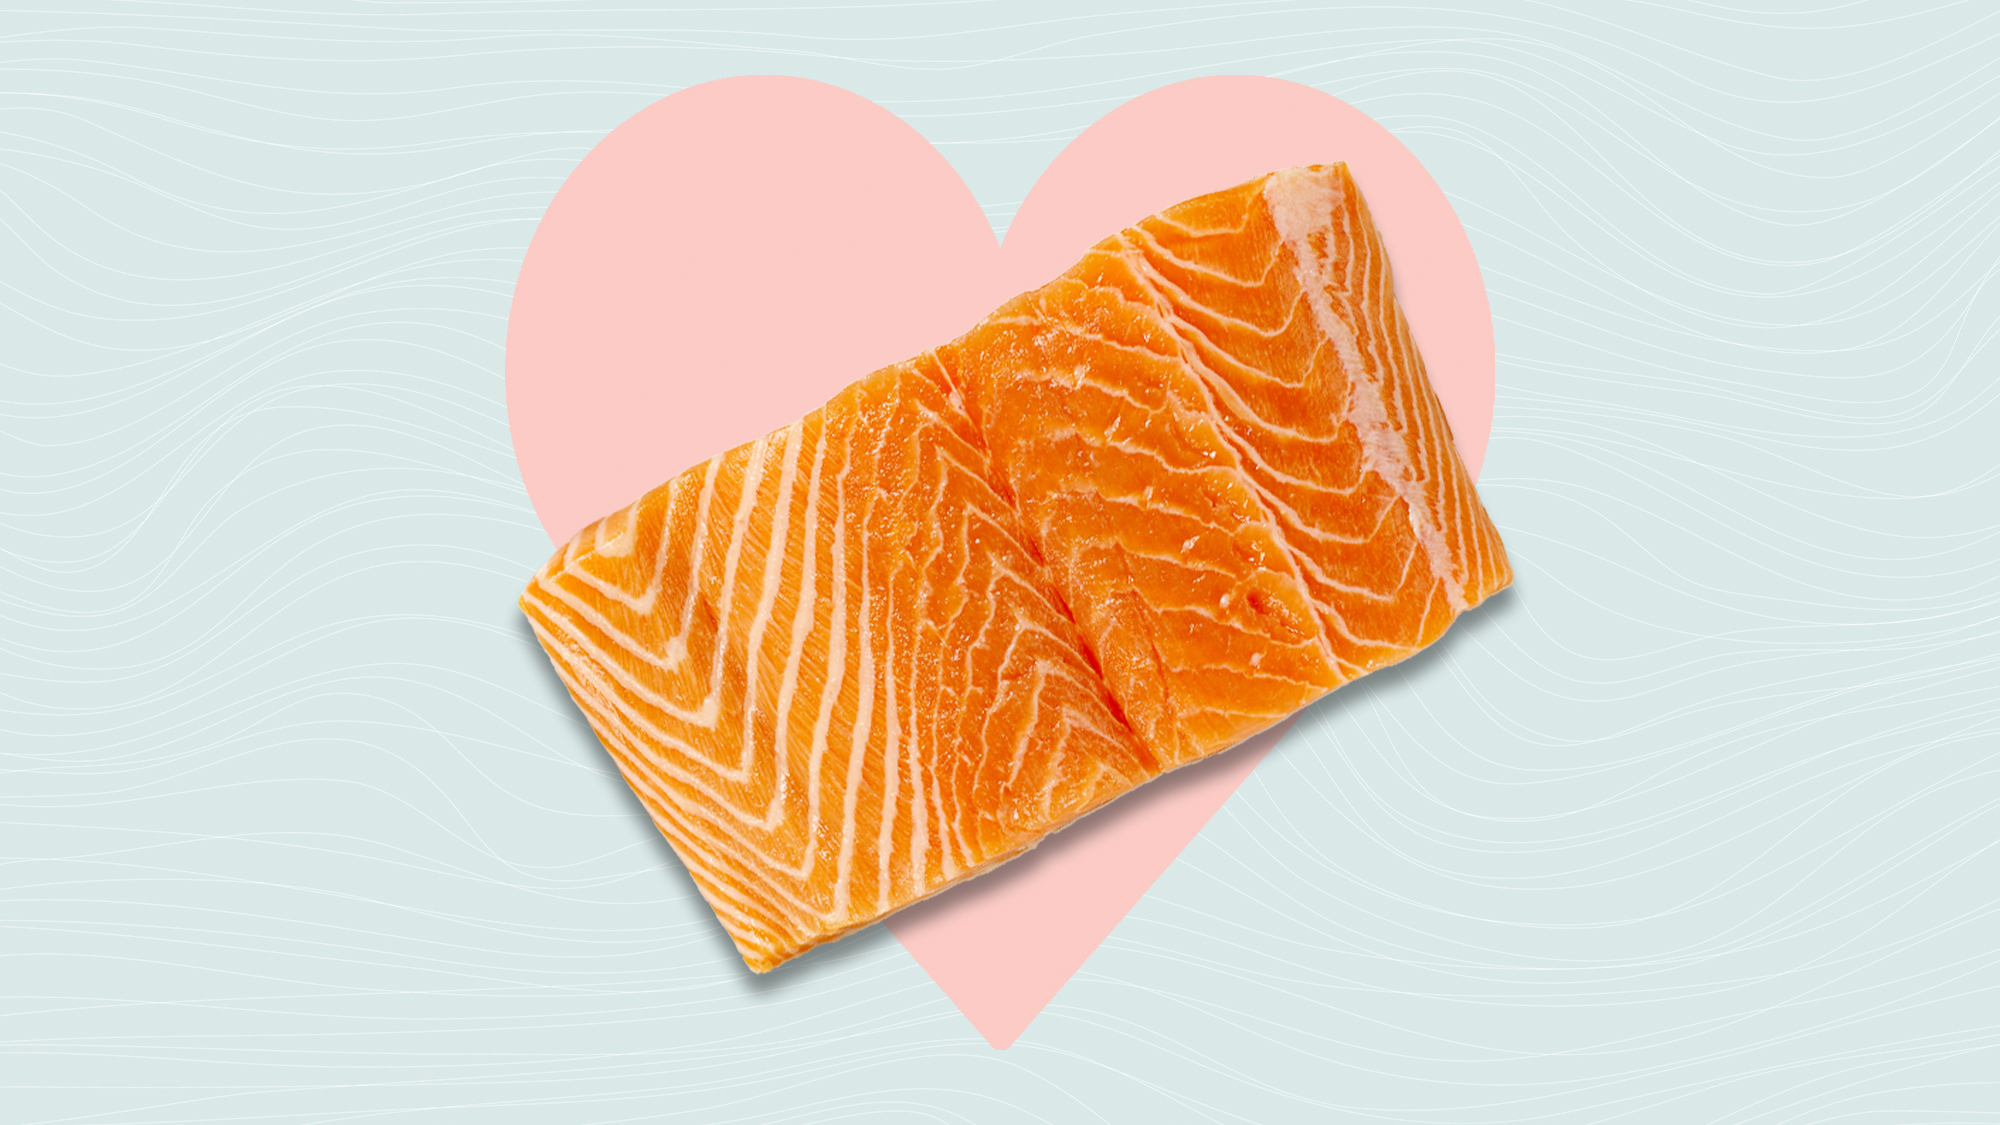 A piece of fresh salmon on a designed background